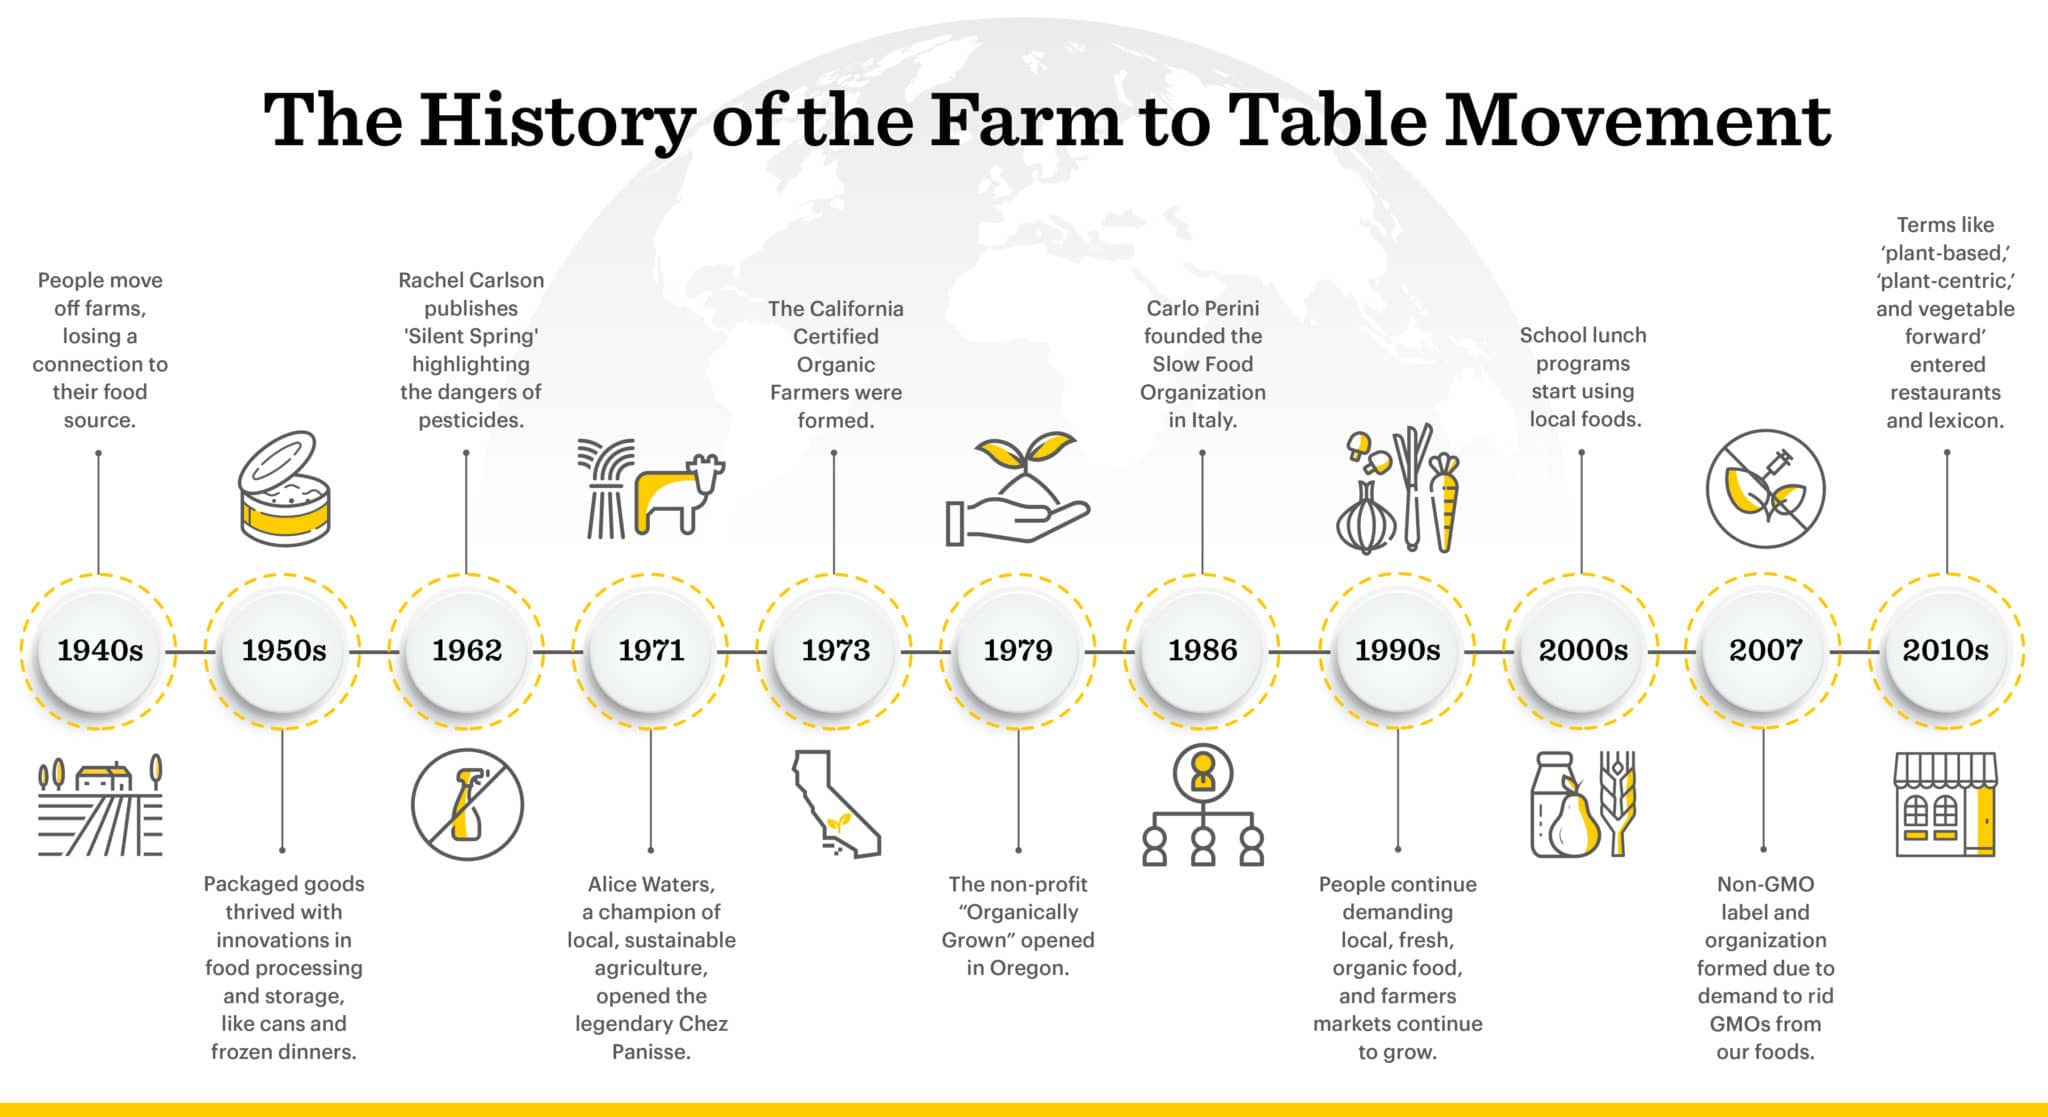 The timeline of the farm to table movement